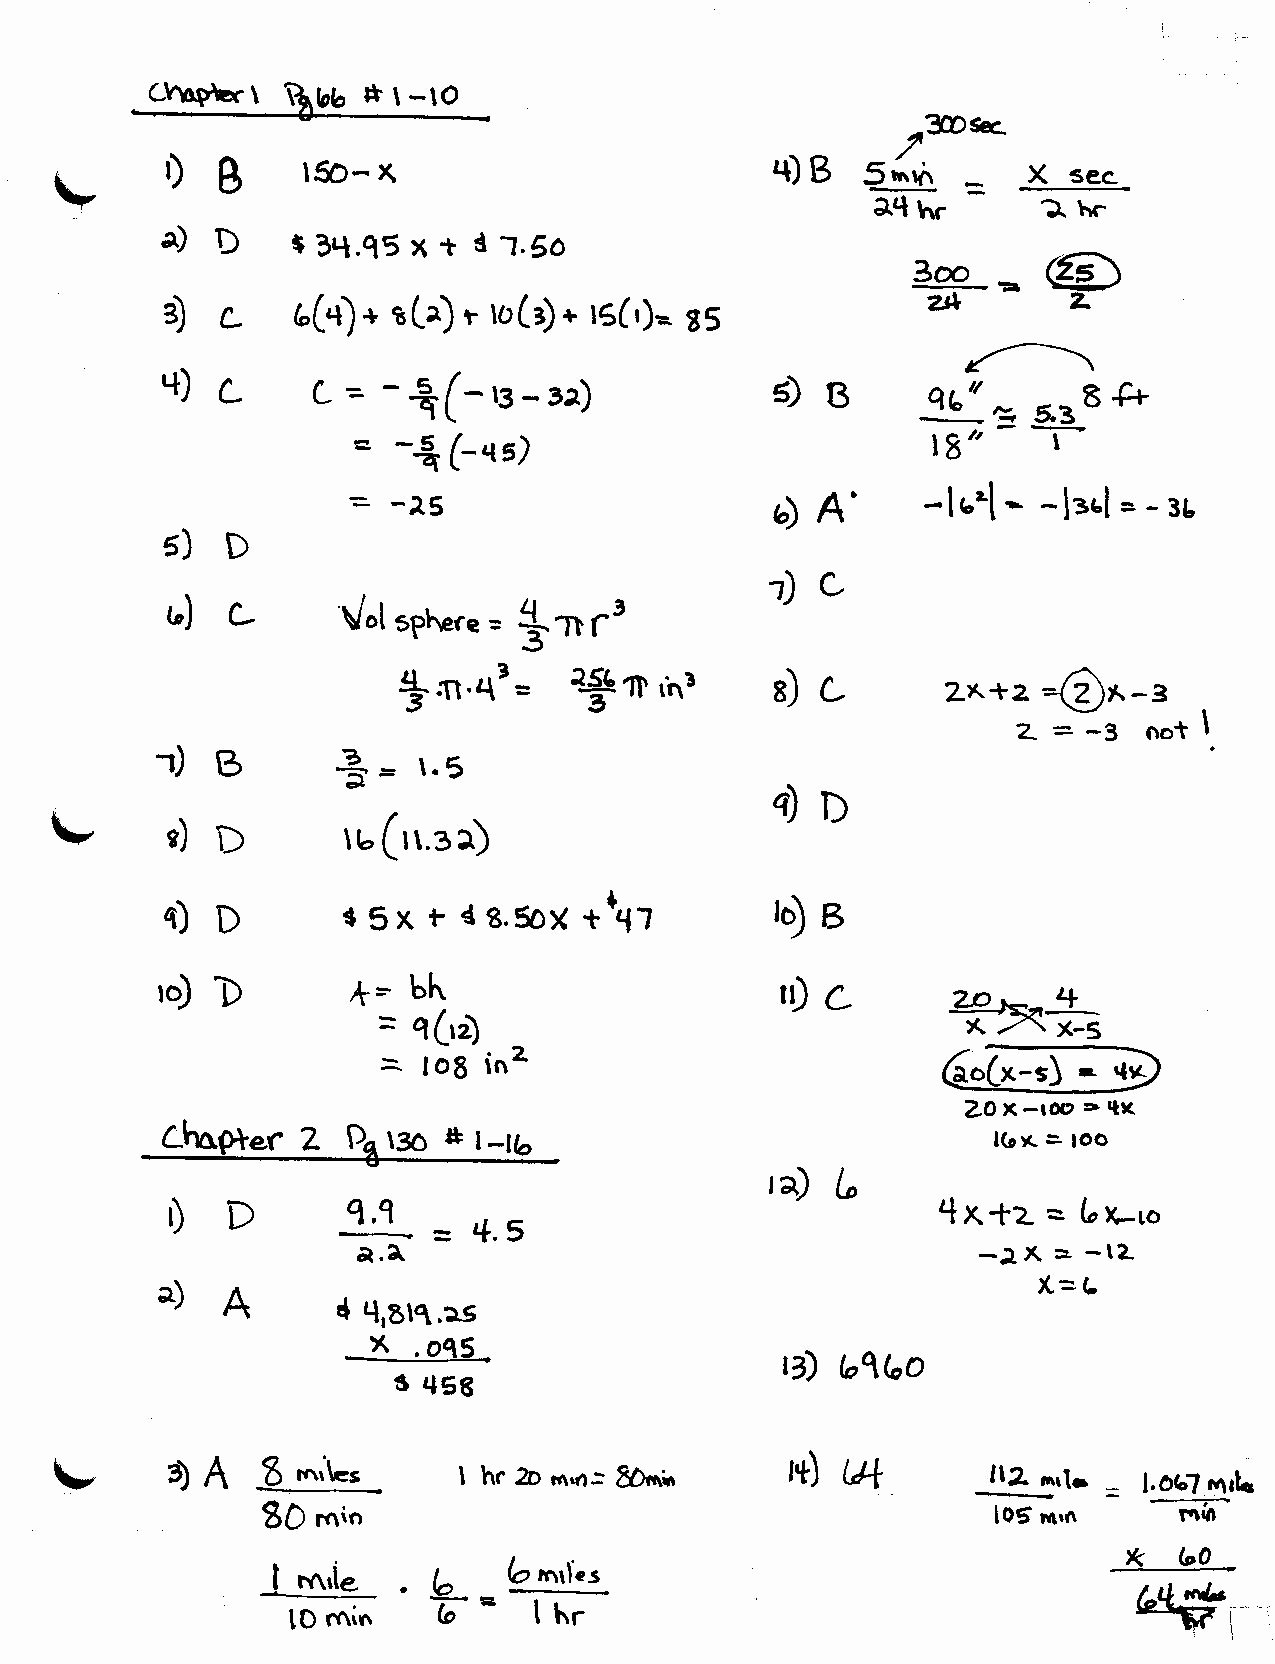 Pre Algebra Review Worksheet Luxury Professional Personal Statement Writing Help Line From